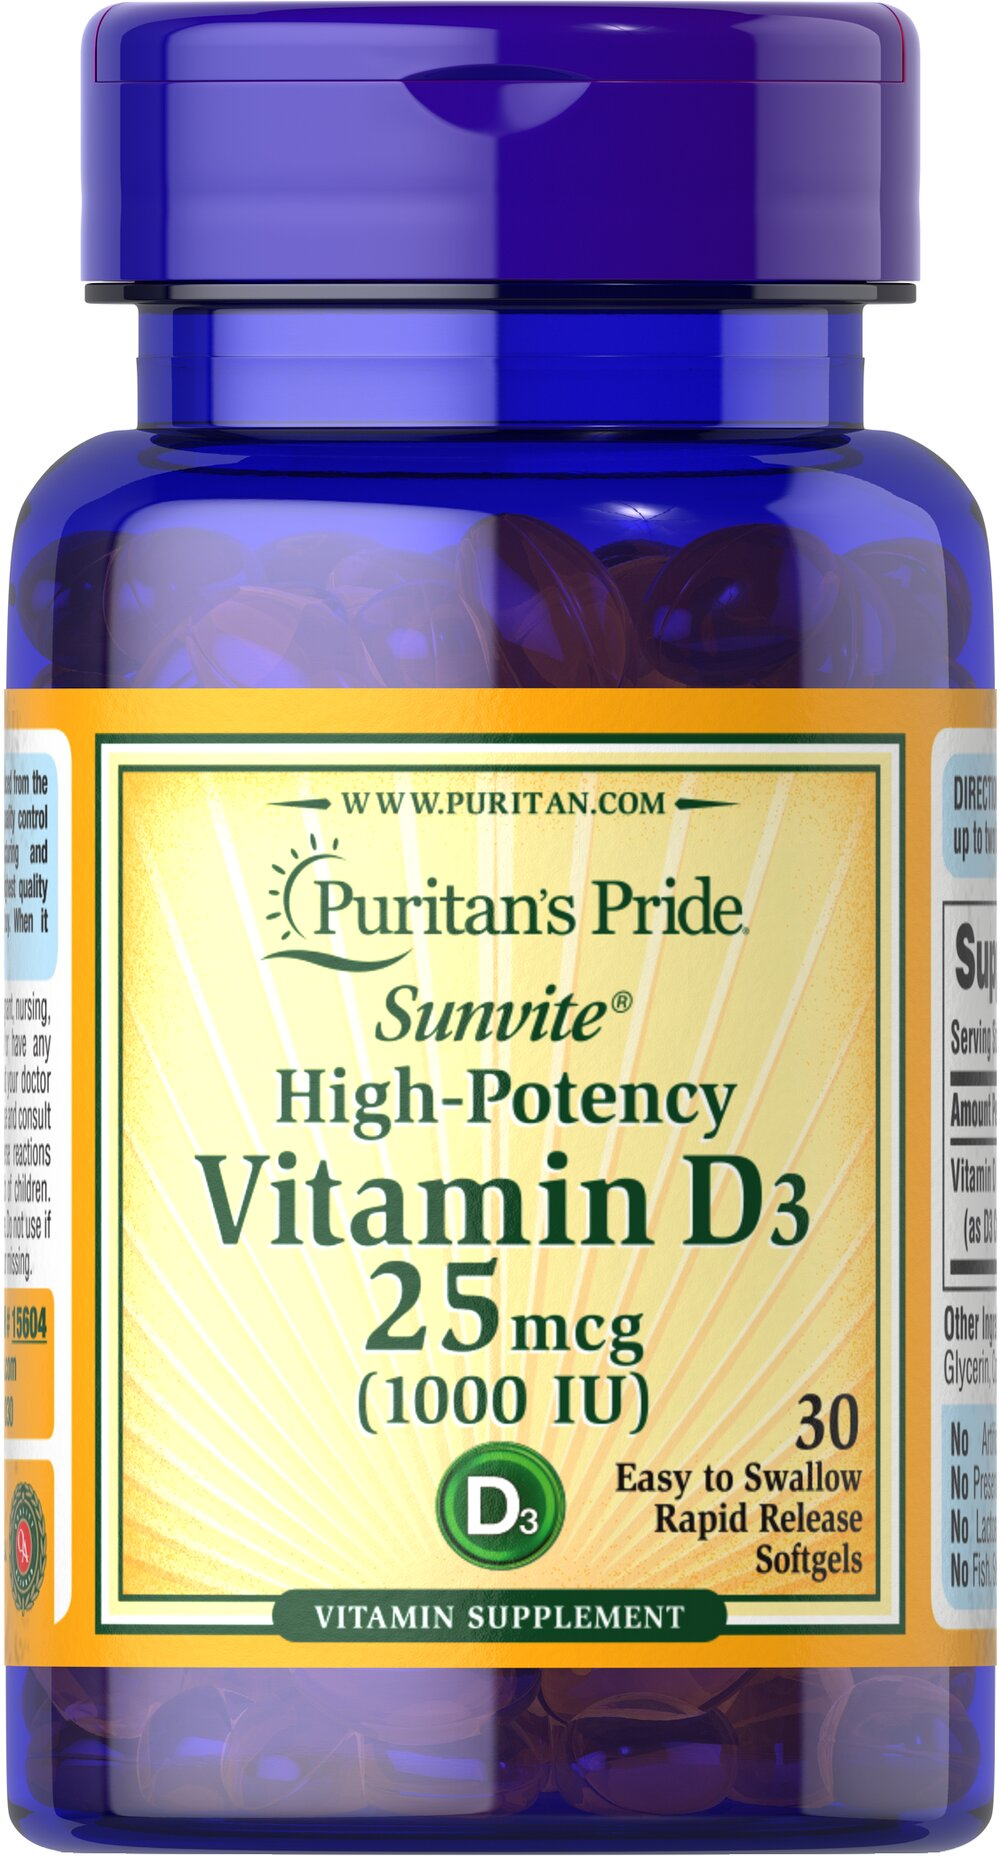 "Vitamin D3 1000 IU <p>Sample the supplement that has been all over the news the past two years – Vitamin D!</p><p><span></span>Vitamin D is known for helping build <a href=""/bone-health-241?searchterm=bone%20health&rdcnt=1"">bone health</a> , plus it supports a healthy immune system.*</p> 30 Rapid Release Softgels 1000 IU $0.99"